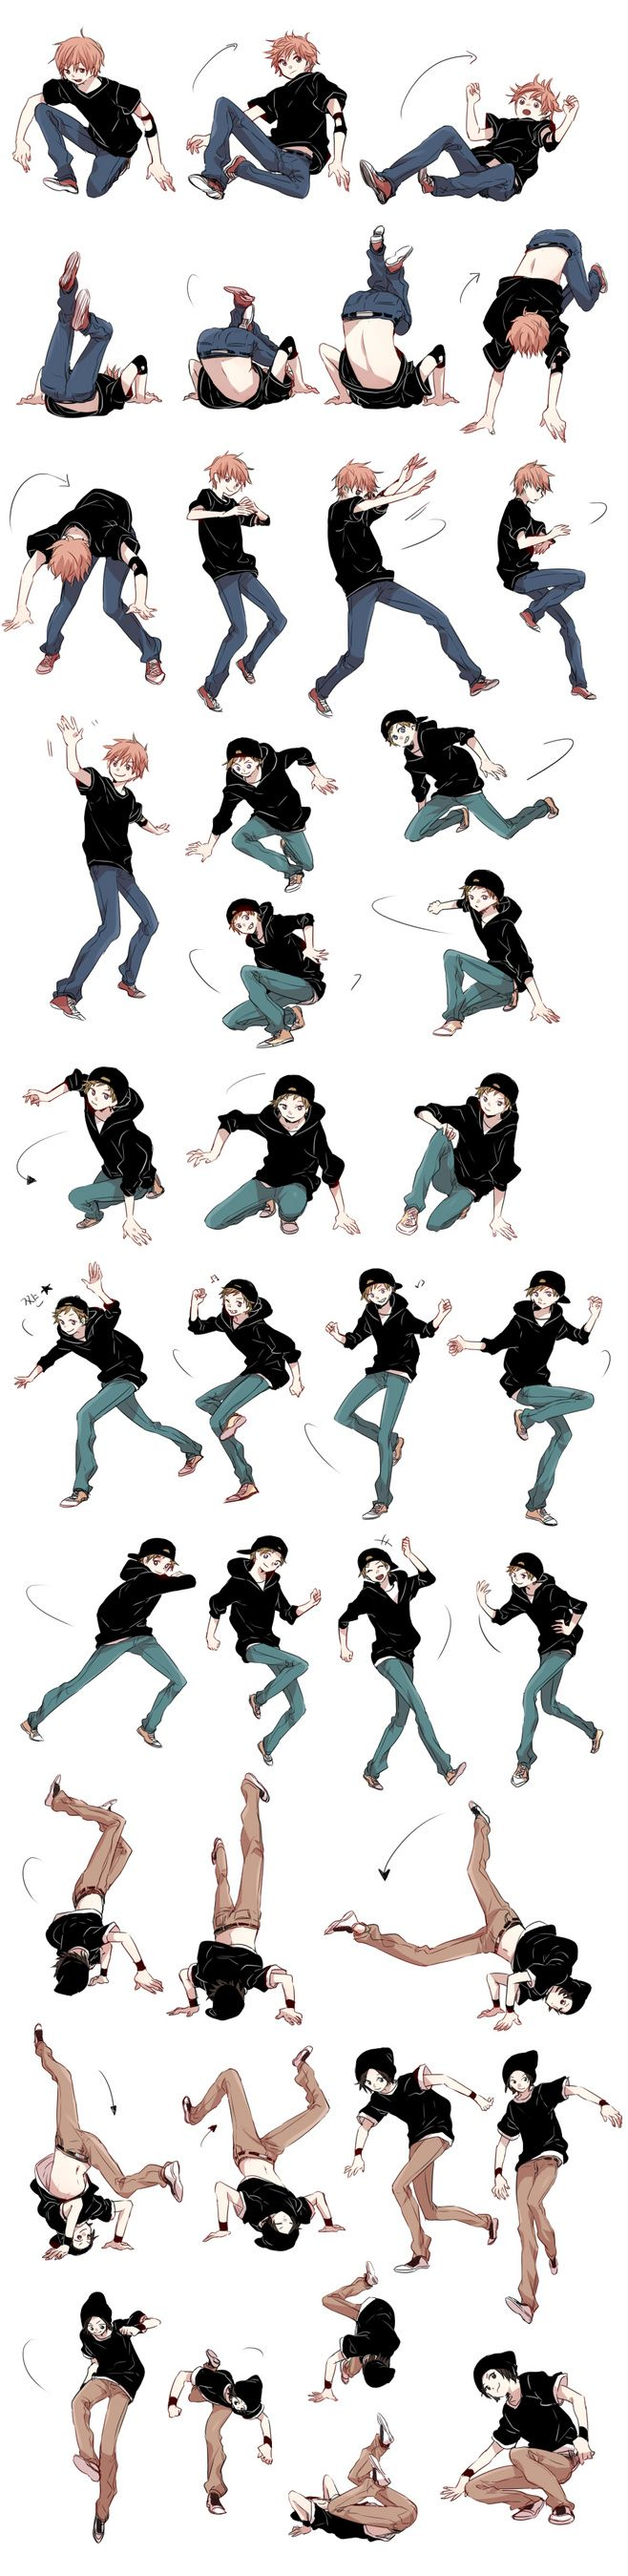 (Not my art) this has the possibility to be used, not just for dance positions, but also combat.